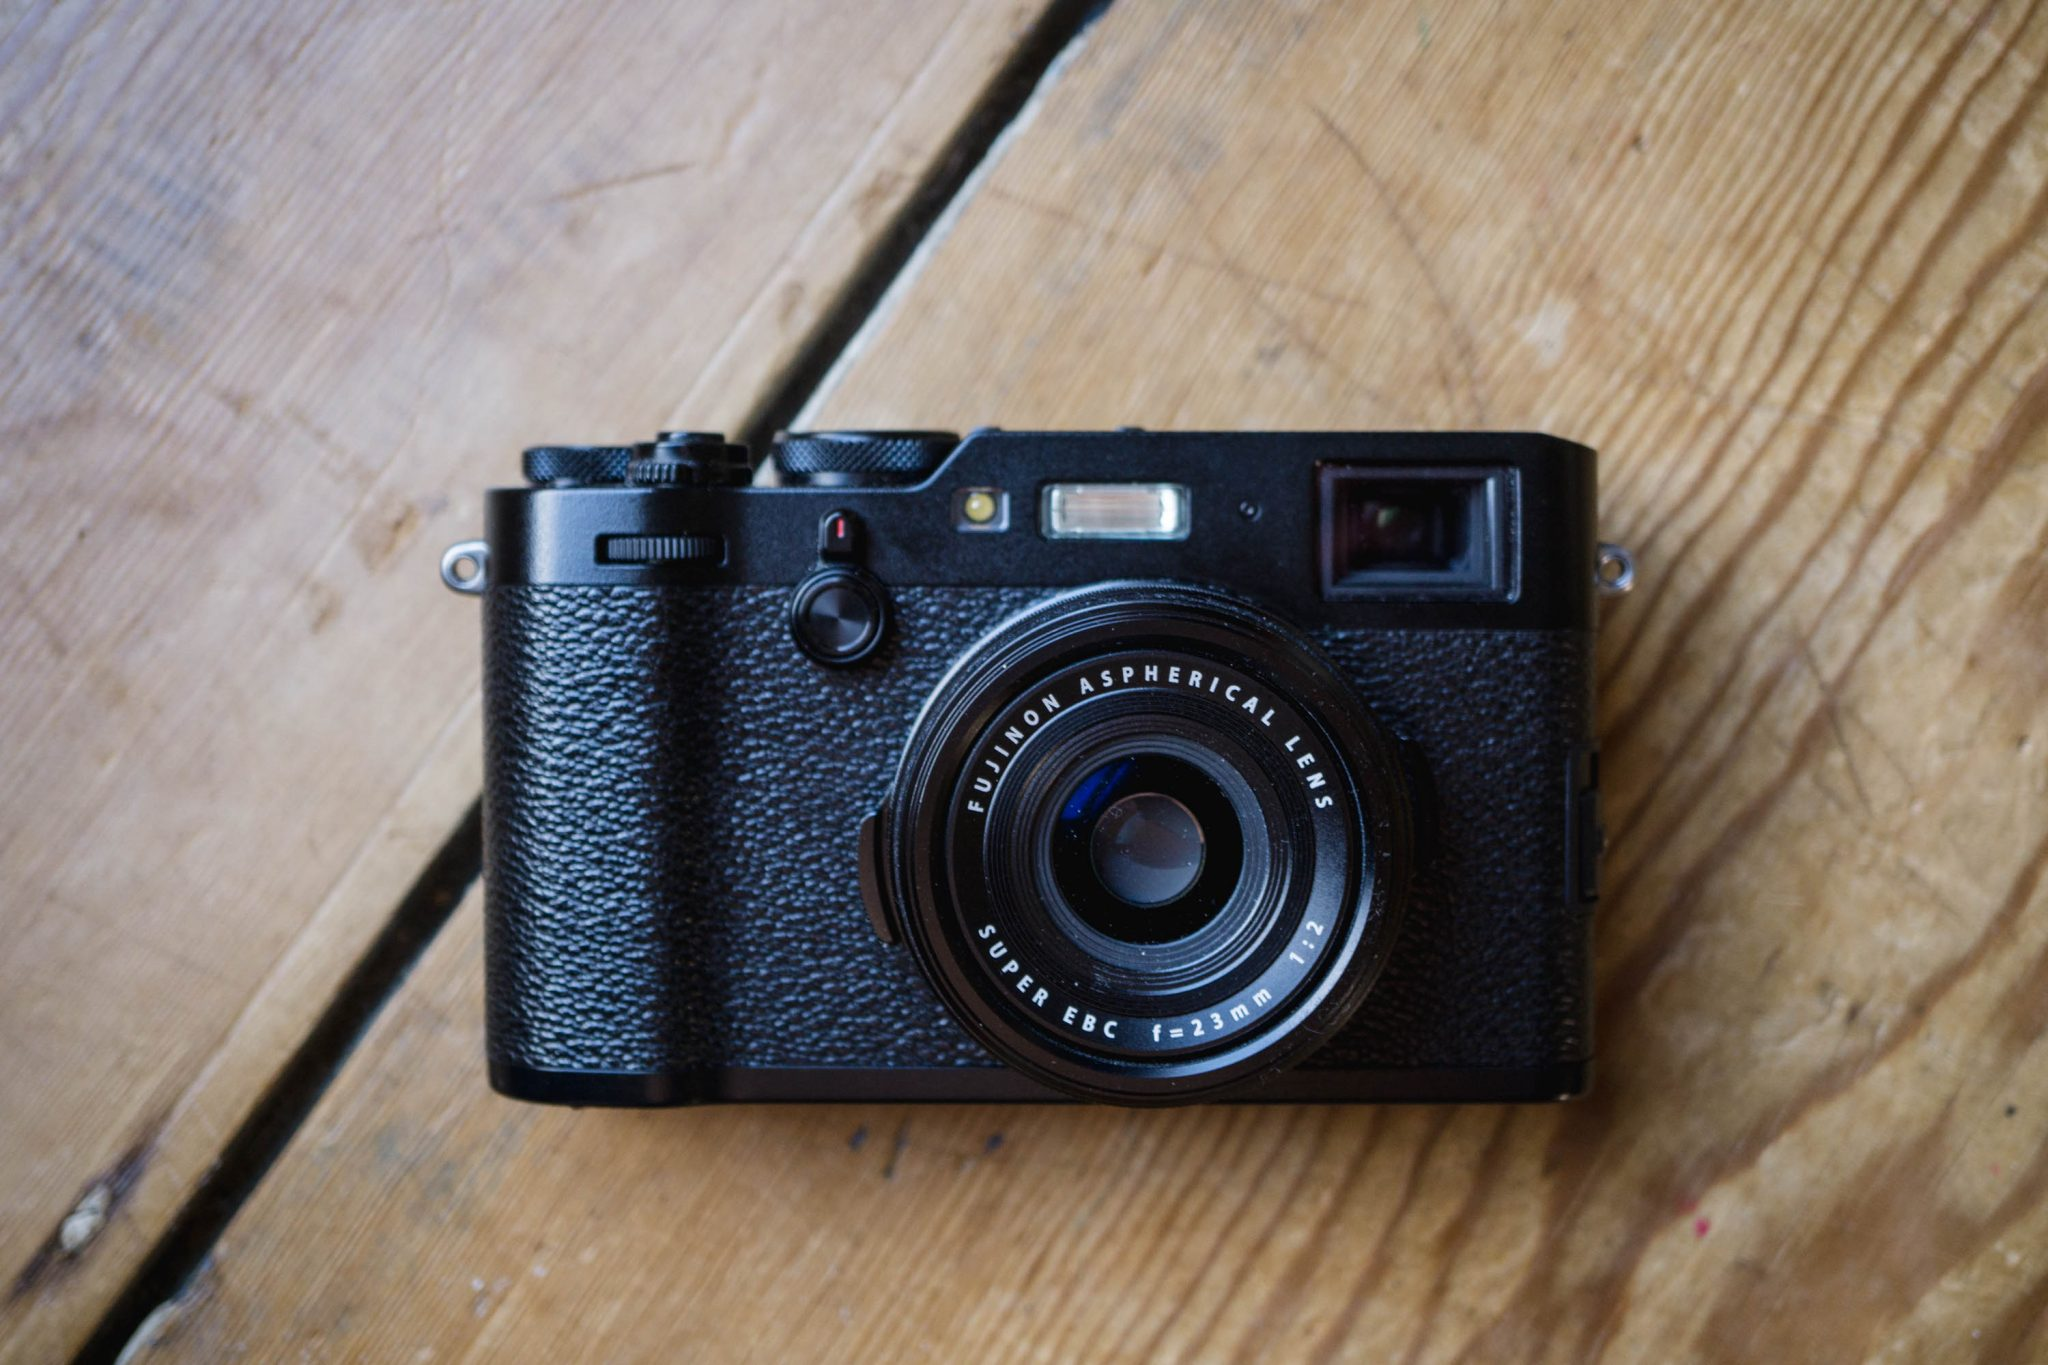 The X100f - Has Fuji lost sight of the elegant original